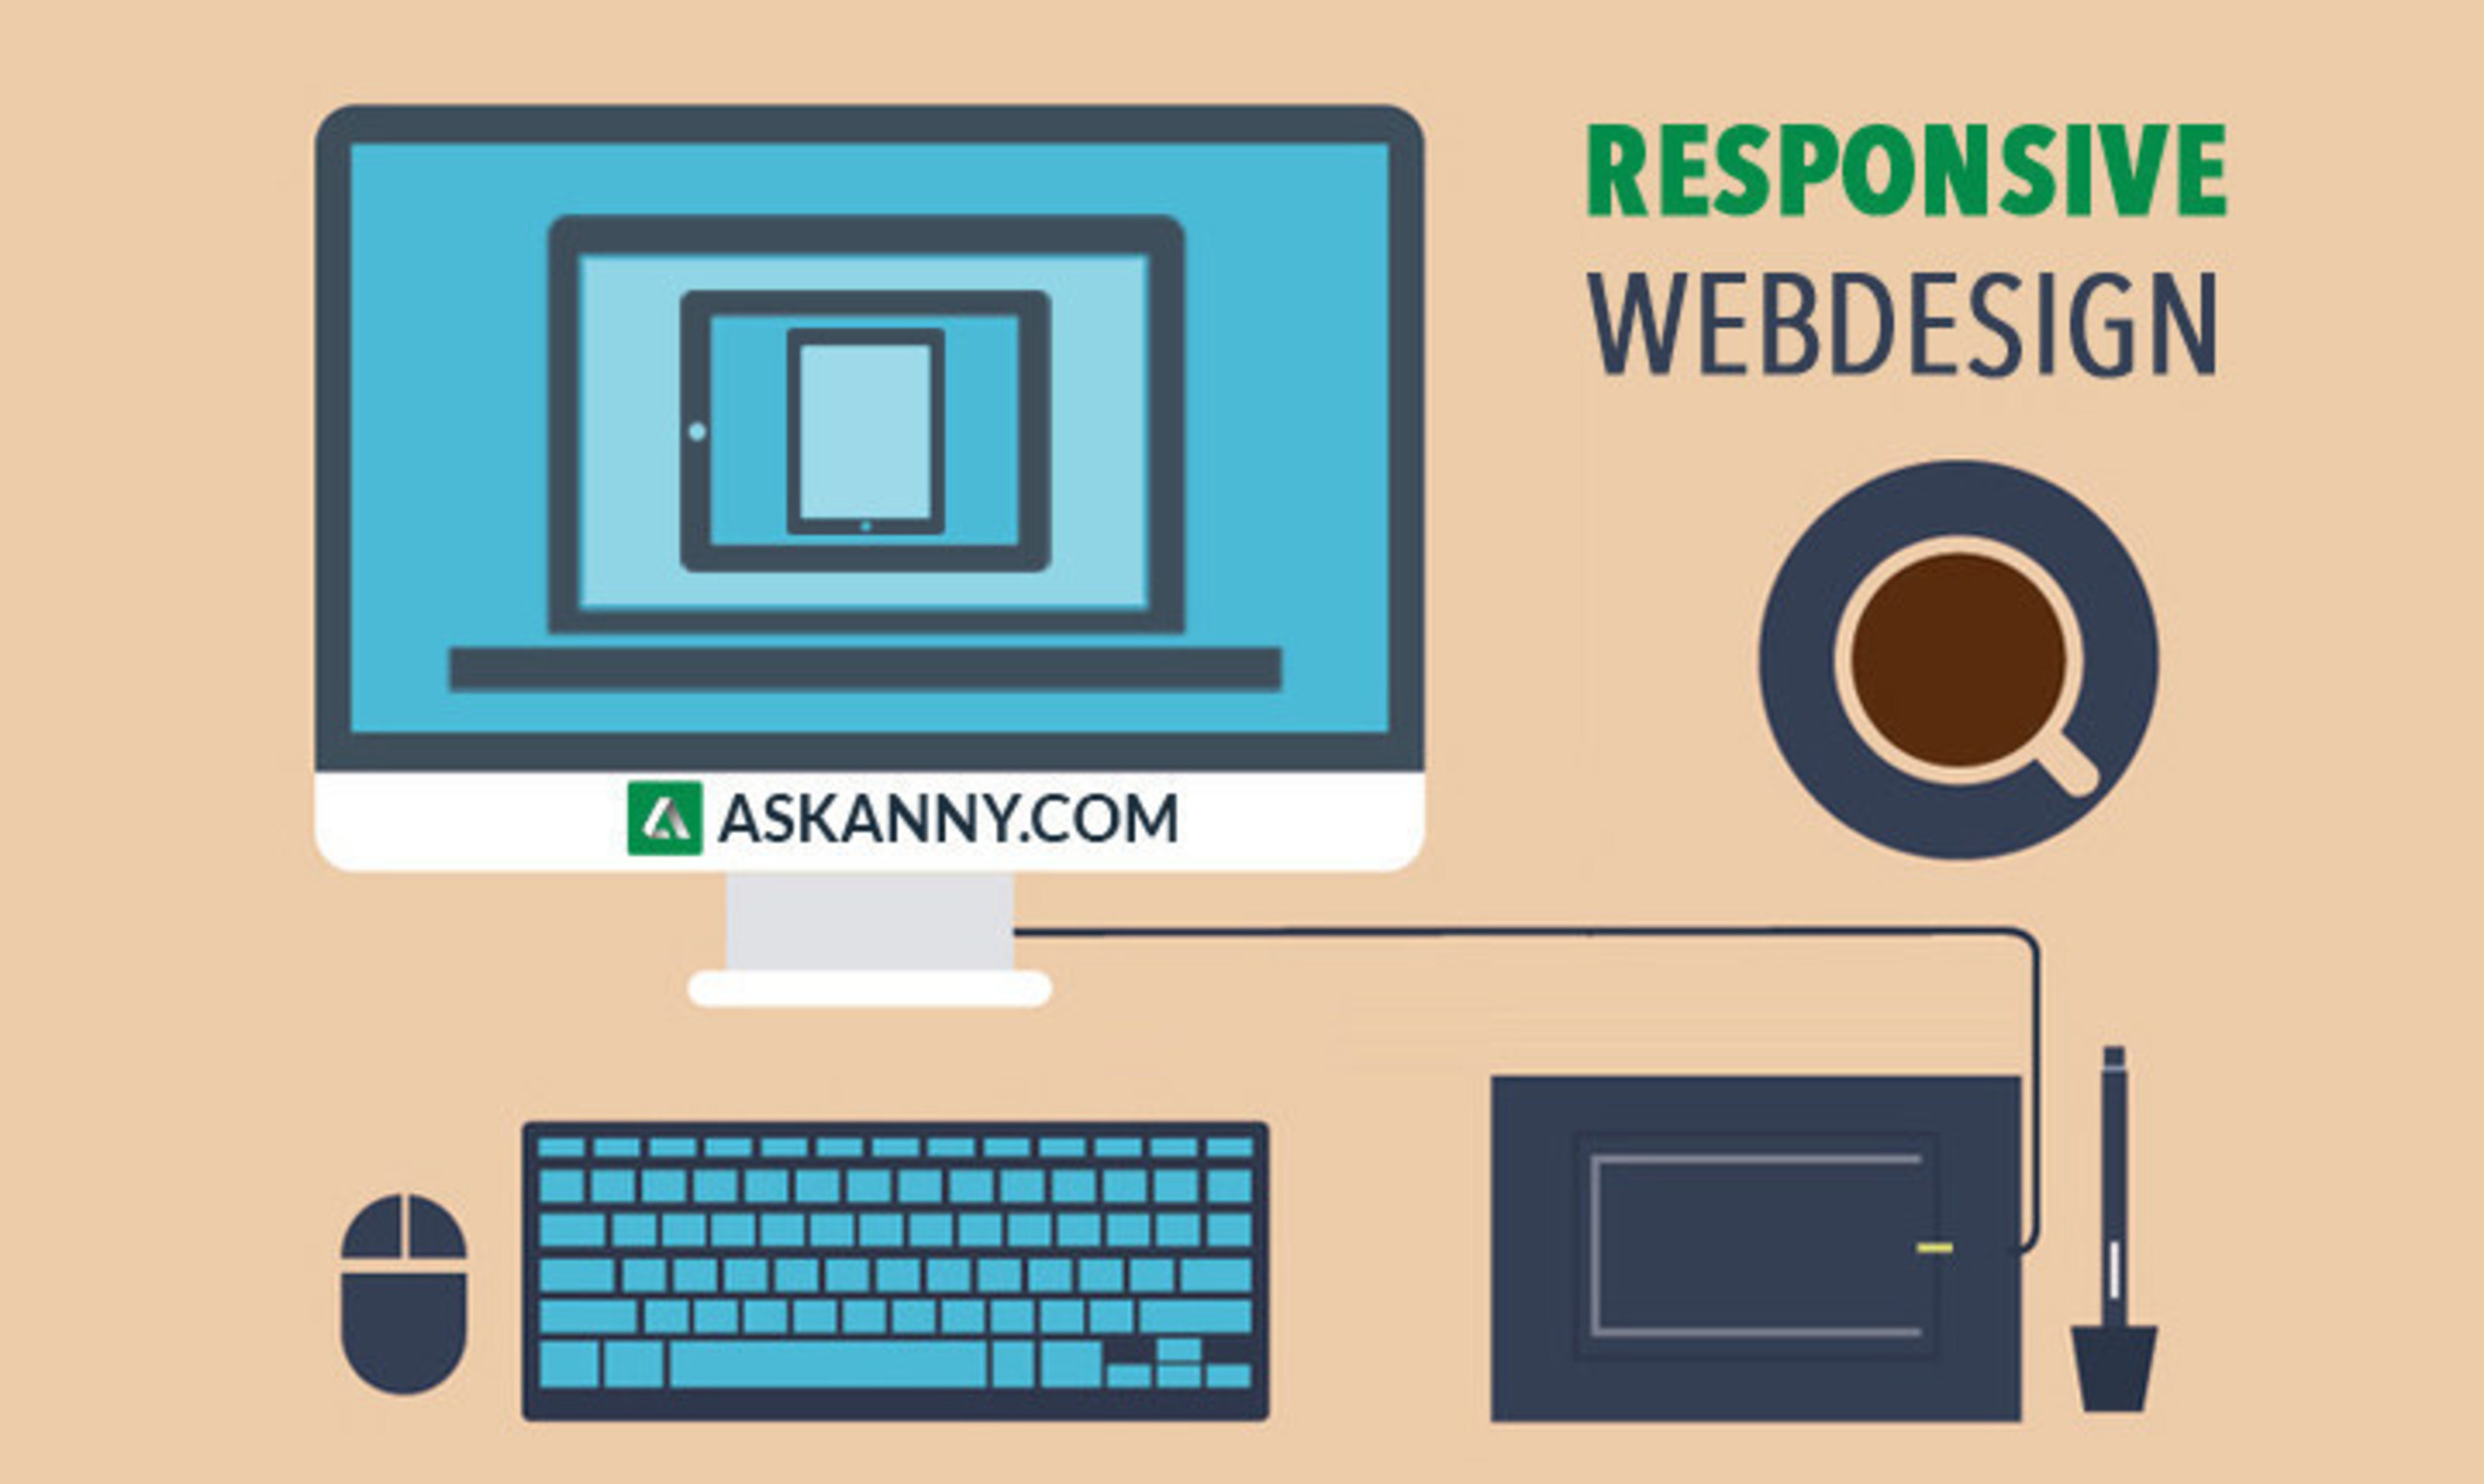 ASKANNY.COM OFFERS SPECIAL RATE FOR UPGRADING TO MOBILE RESPONSIVE AND VOICE SEARCH OPTIMIZED WEBSITES